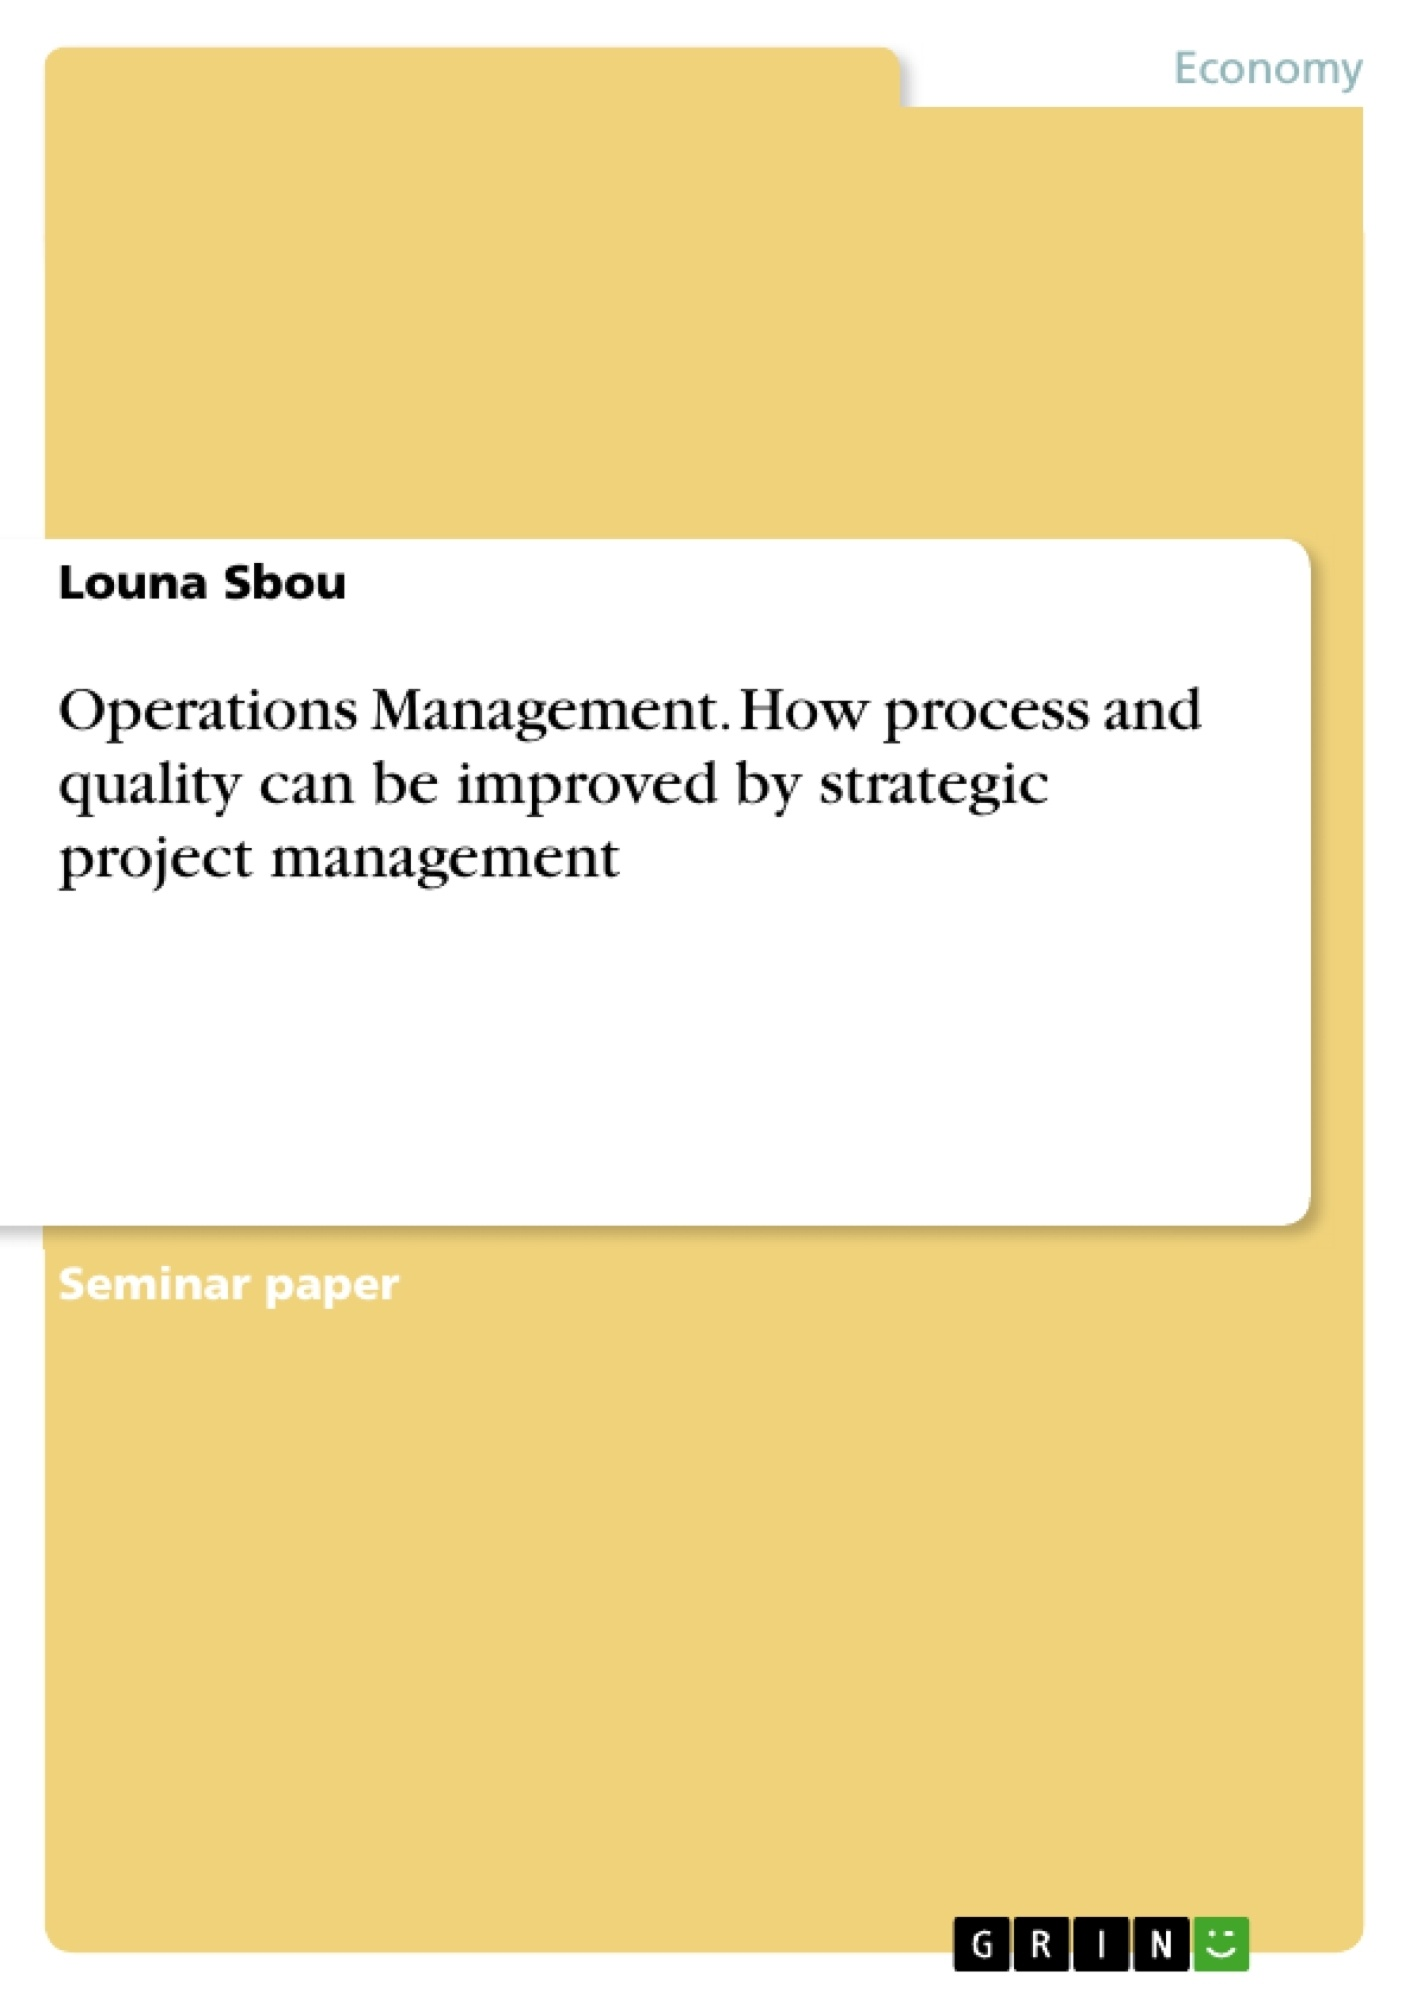 Title: Operations Management. How process and quality can be improved by strategic project management